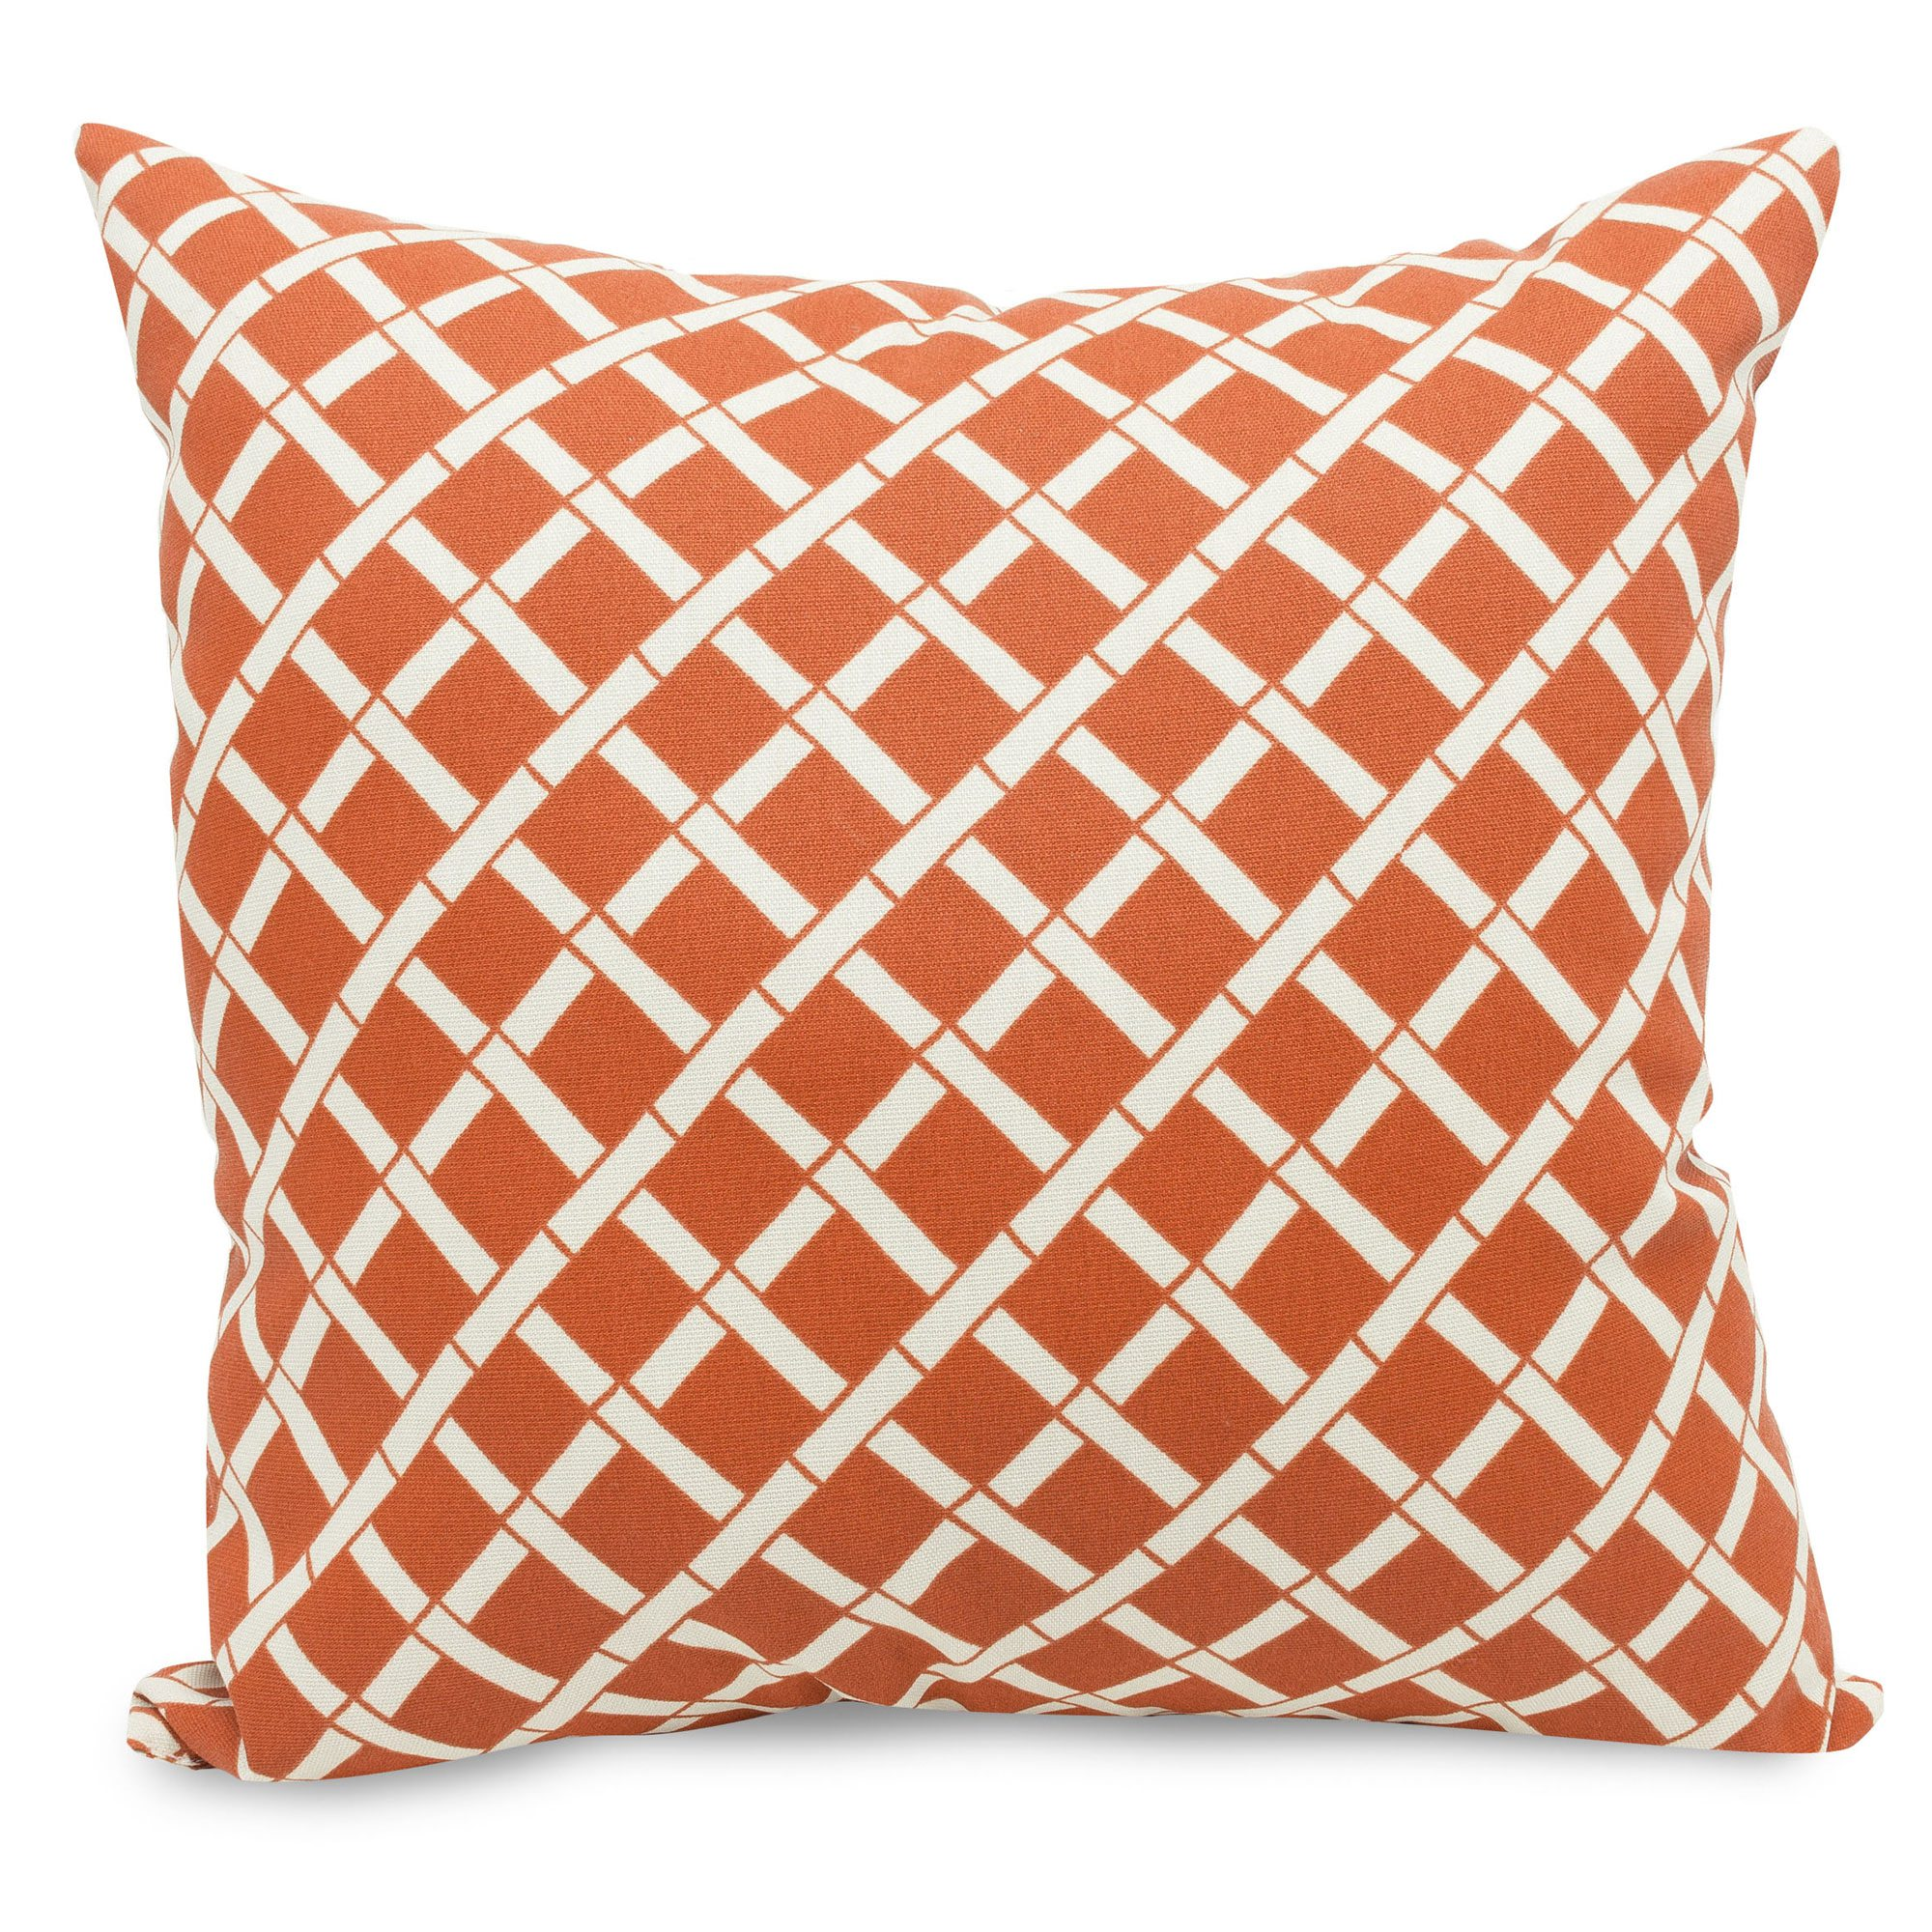 delight home pillow connor goods pillows a handcrafted wit susan pin giveaway